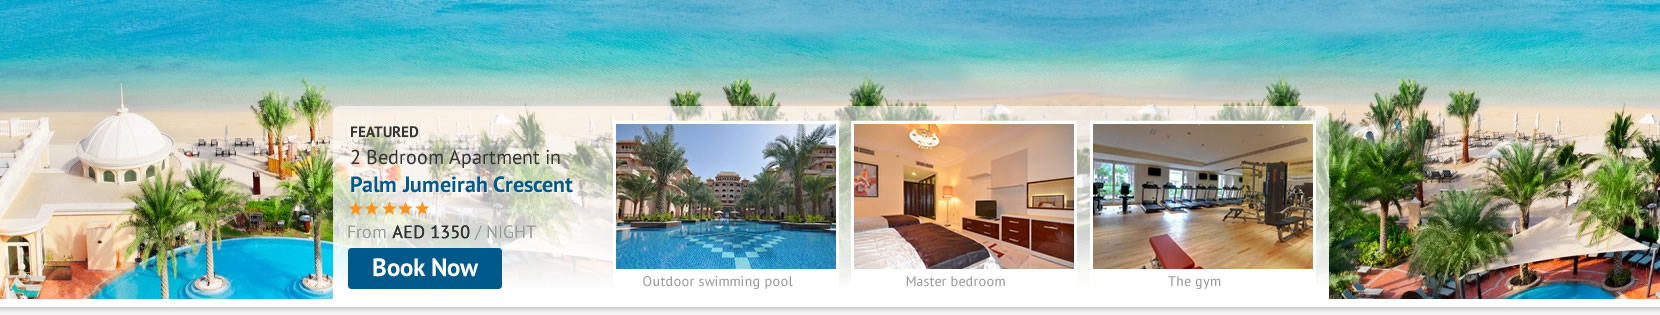 Book luxury Palm Jumeirah Crescent Holiday Apartments next to some of the leading Dubai Hotels